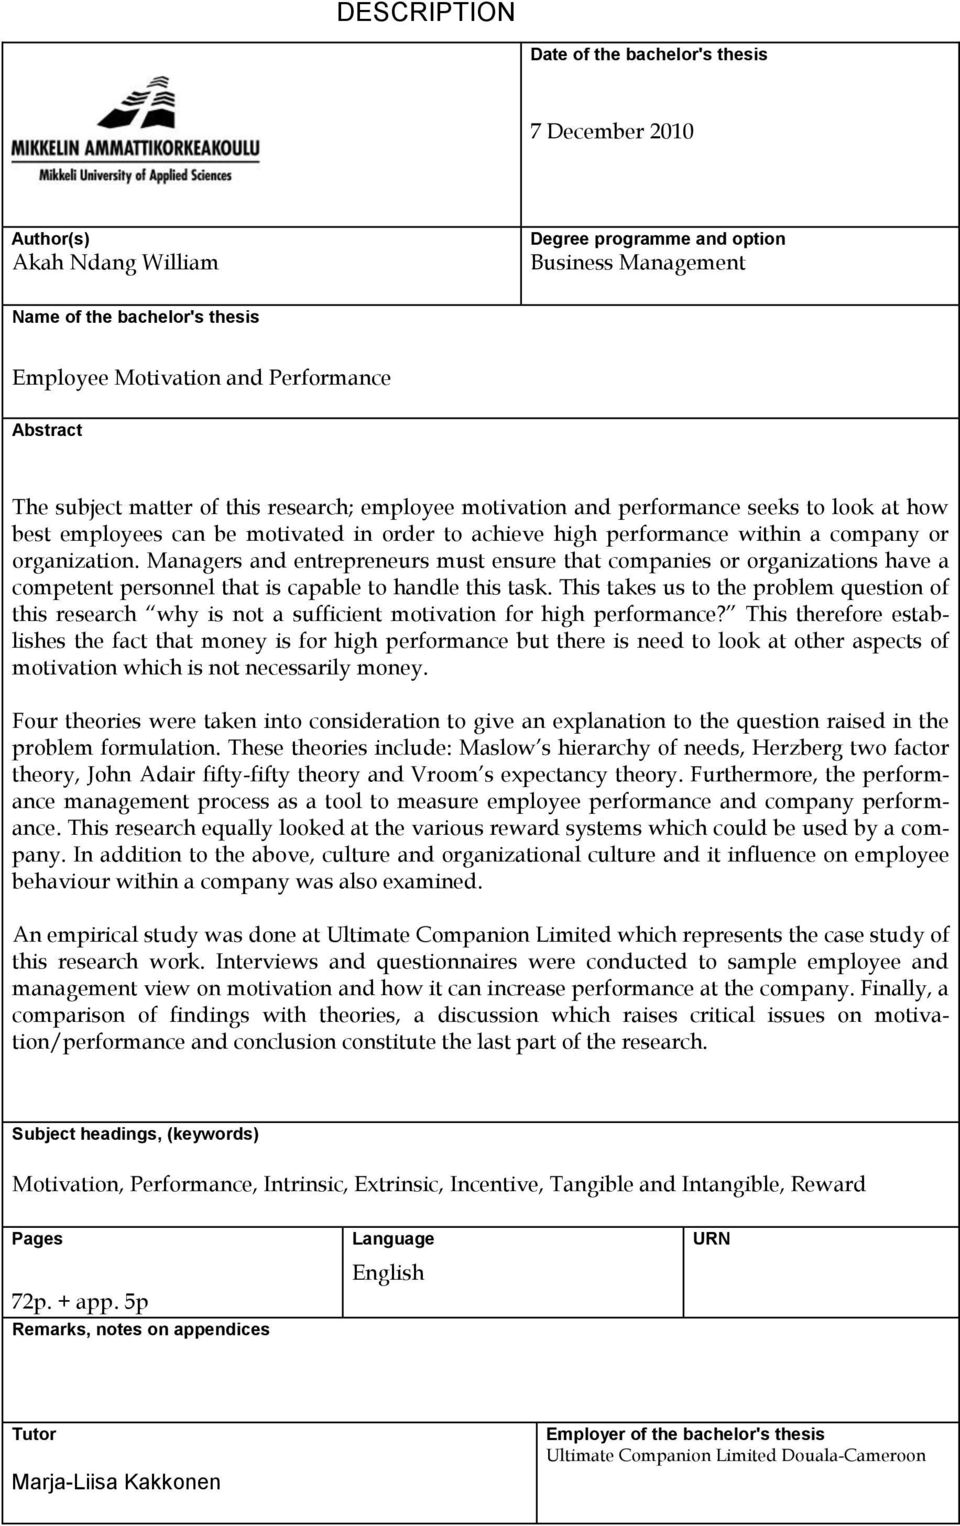 employee motivation thesis leadership affects on employee  dissertation on employee motivation and performance dissertation on employee motivation and performance